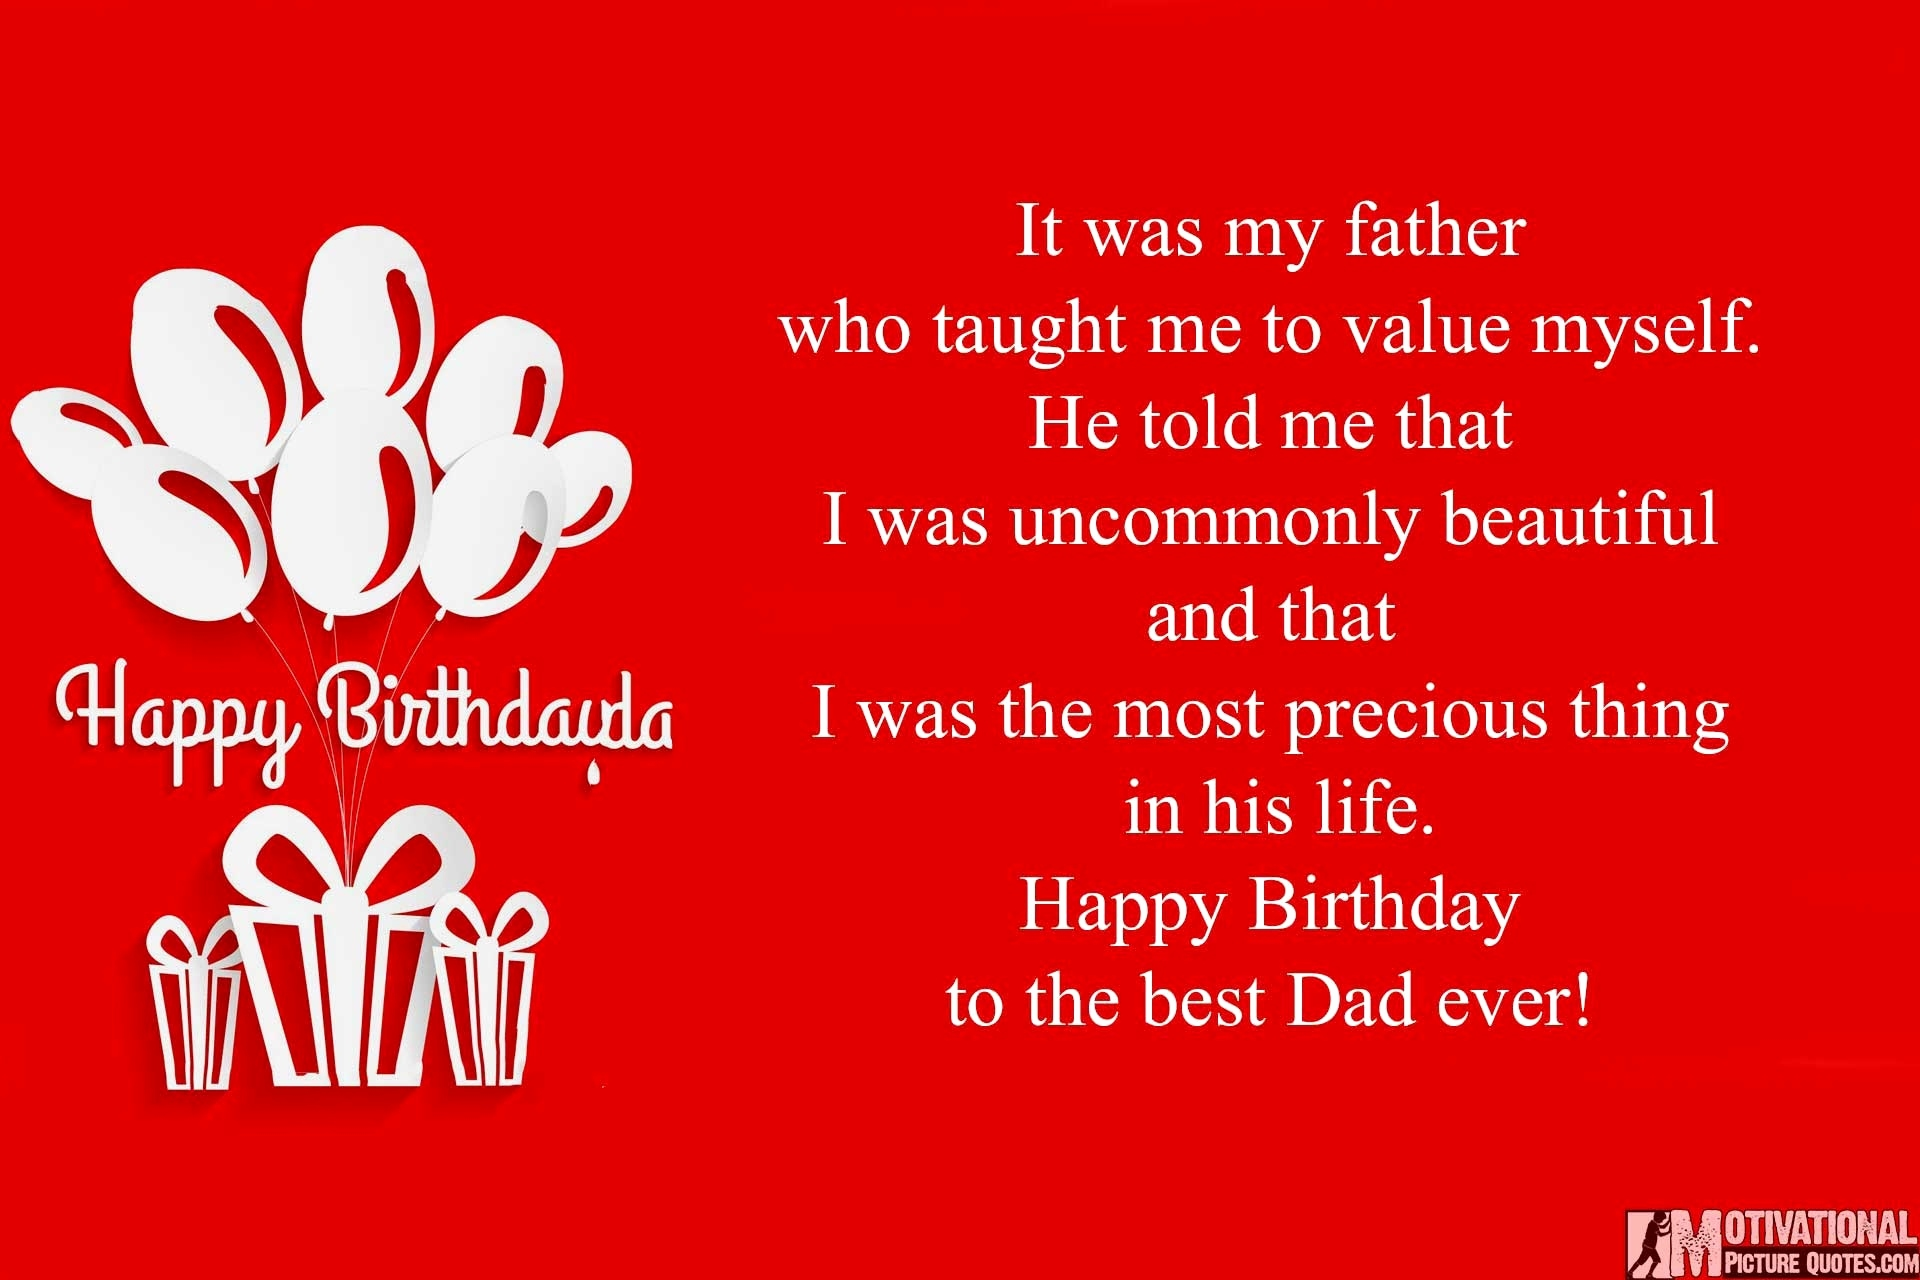 5th birthday card messages ; 5th-birthday-card-messages-beautiful-50-new-gallery-quotes-for-your-own-birthday-birthday-ideas-of-5th-birthday-card-messages